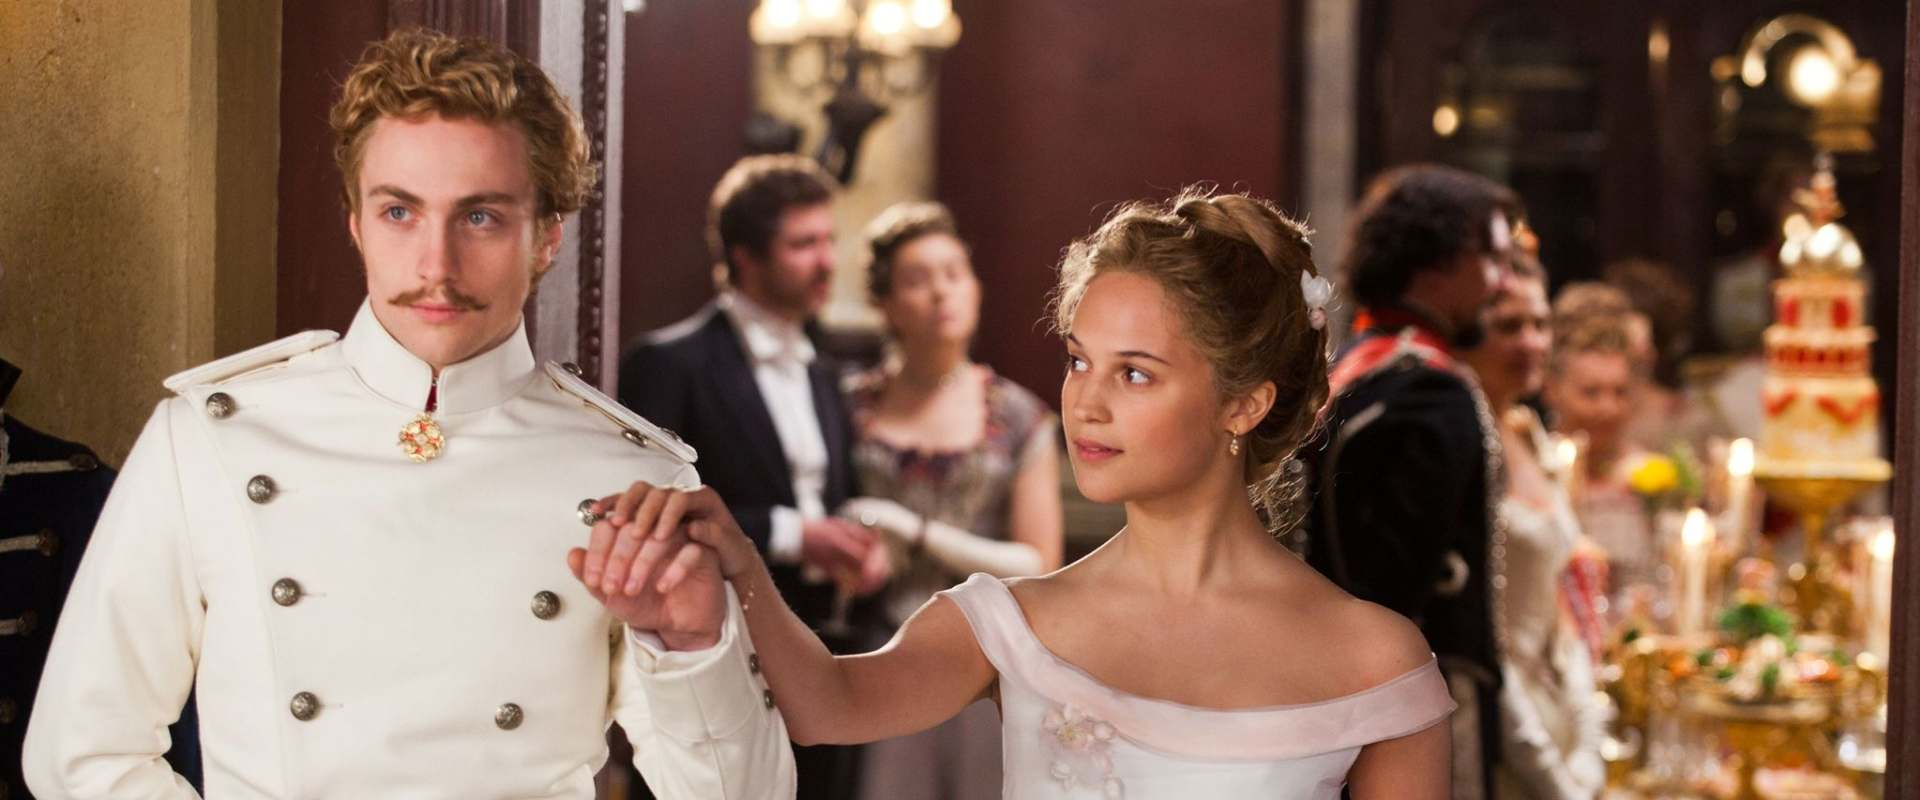 Anna Karenina background 1